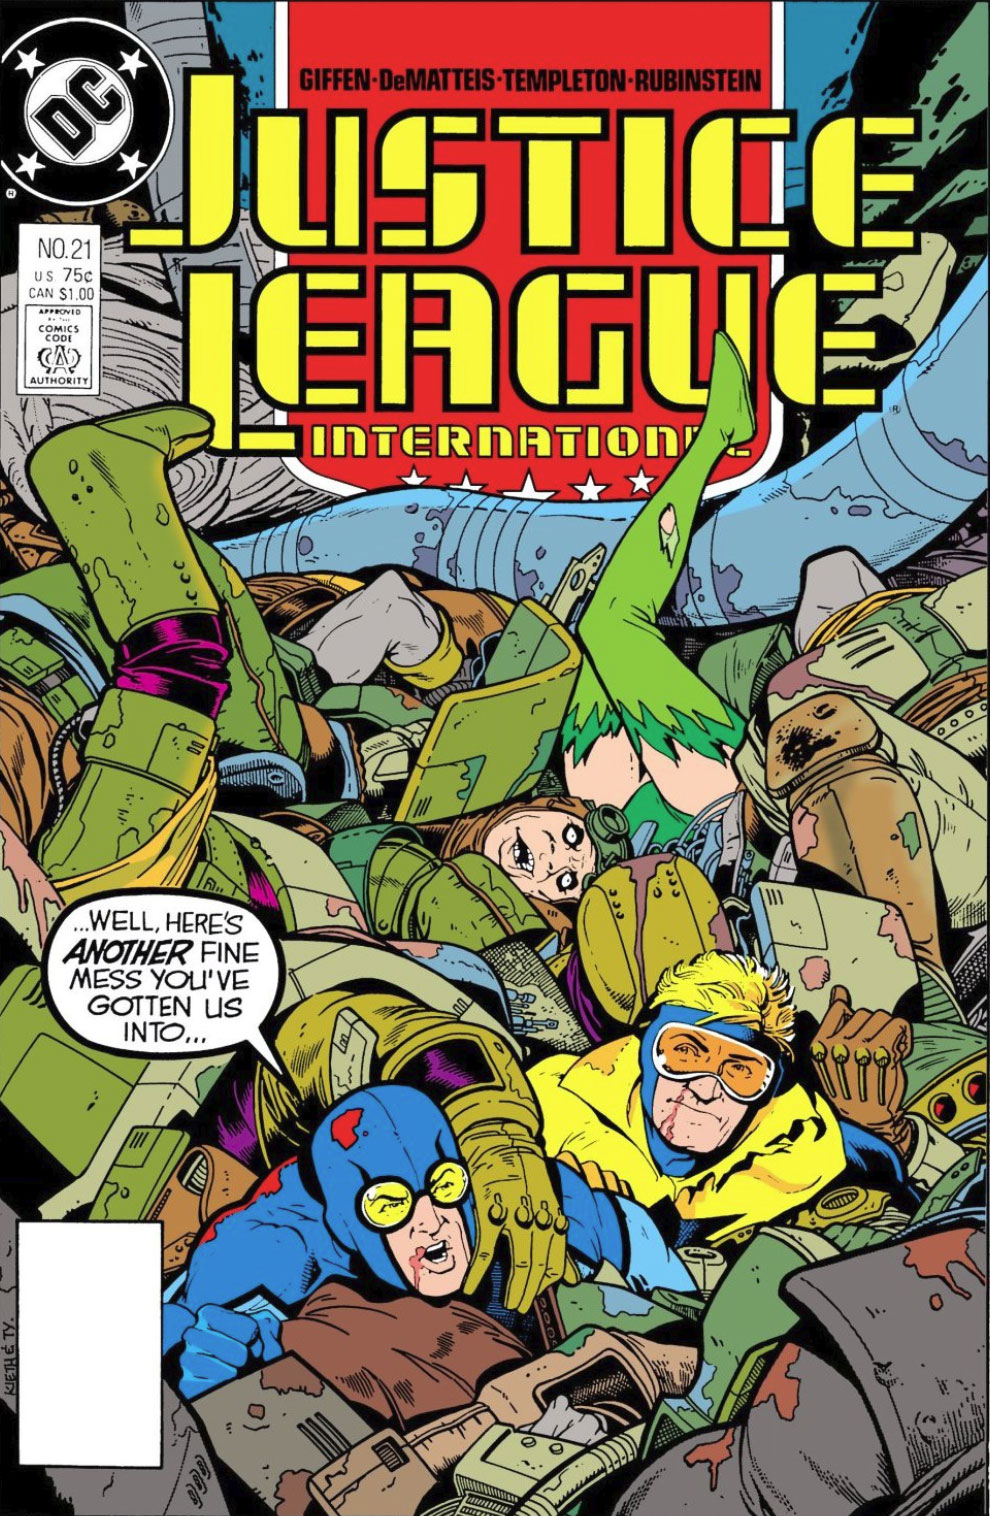 Justice League International #21 cover by Keith Giffen and Ty Templeton!